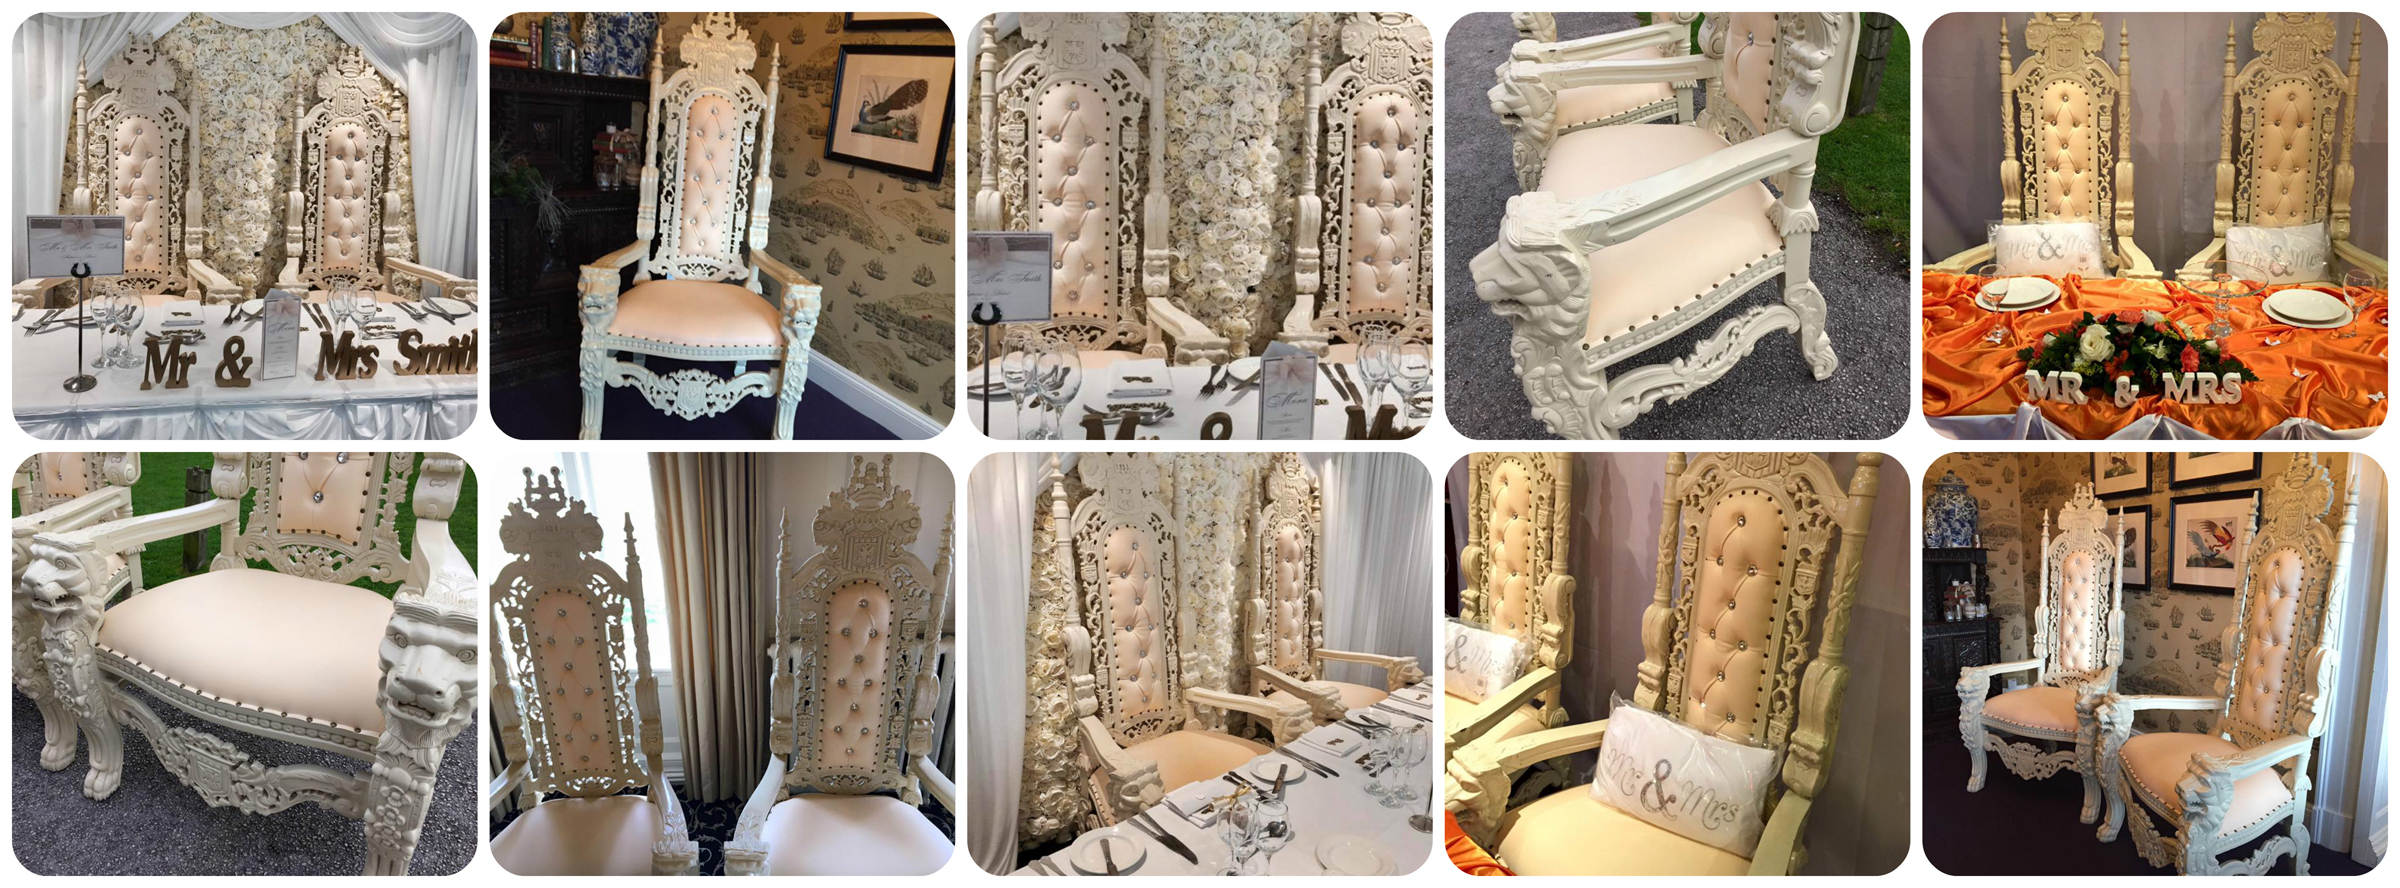 Wedding throne chair hire northwest liverpool manchester cheshire